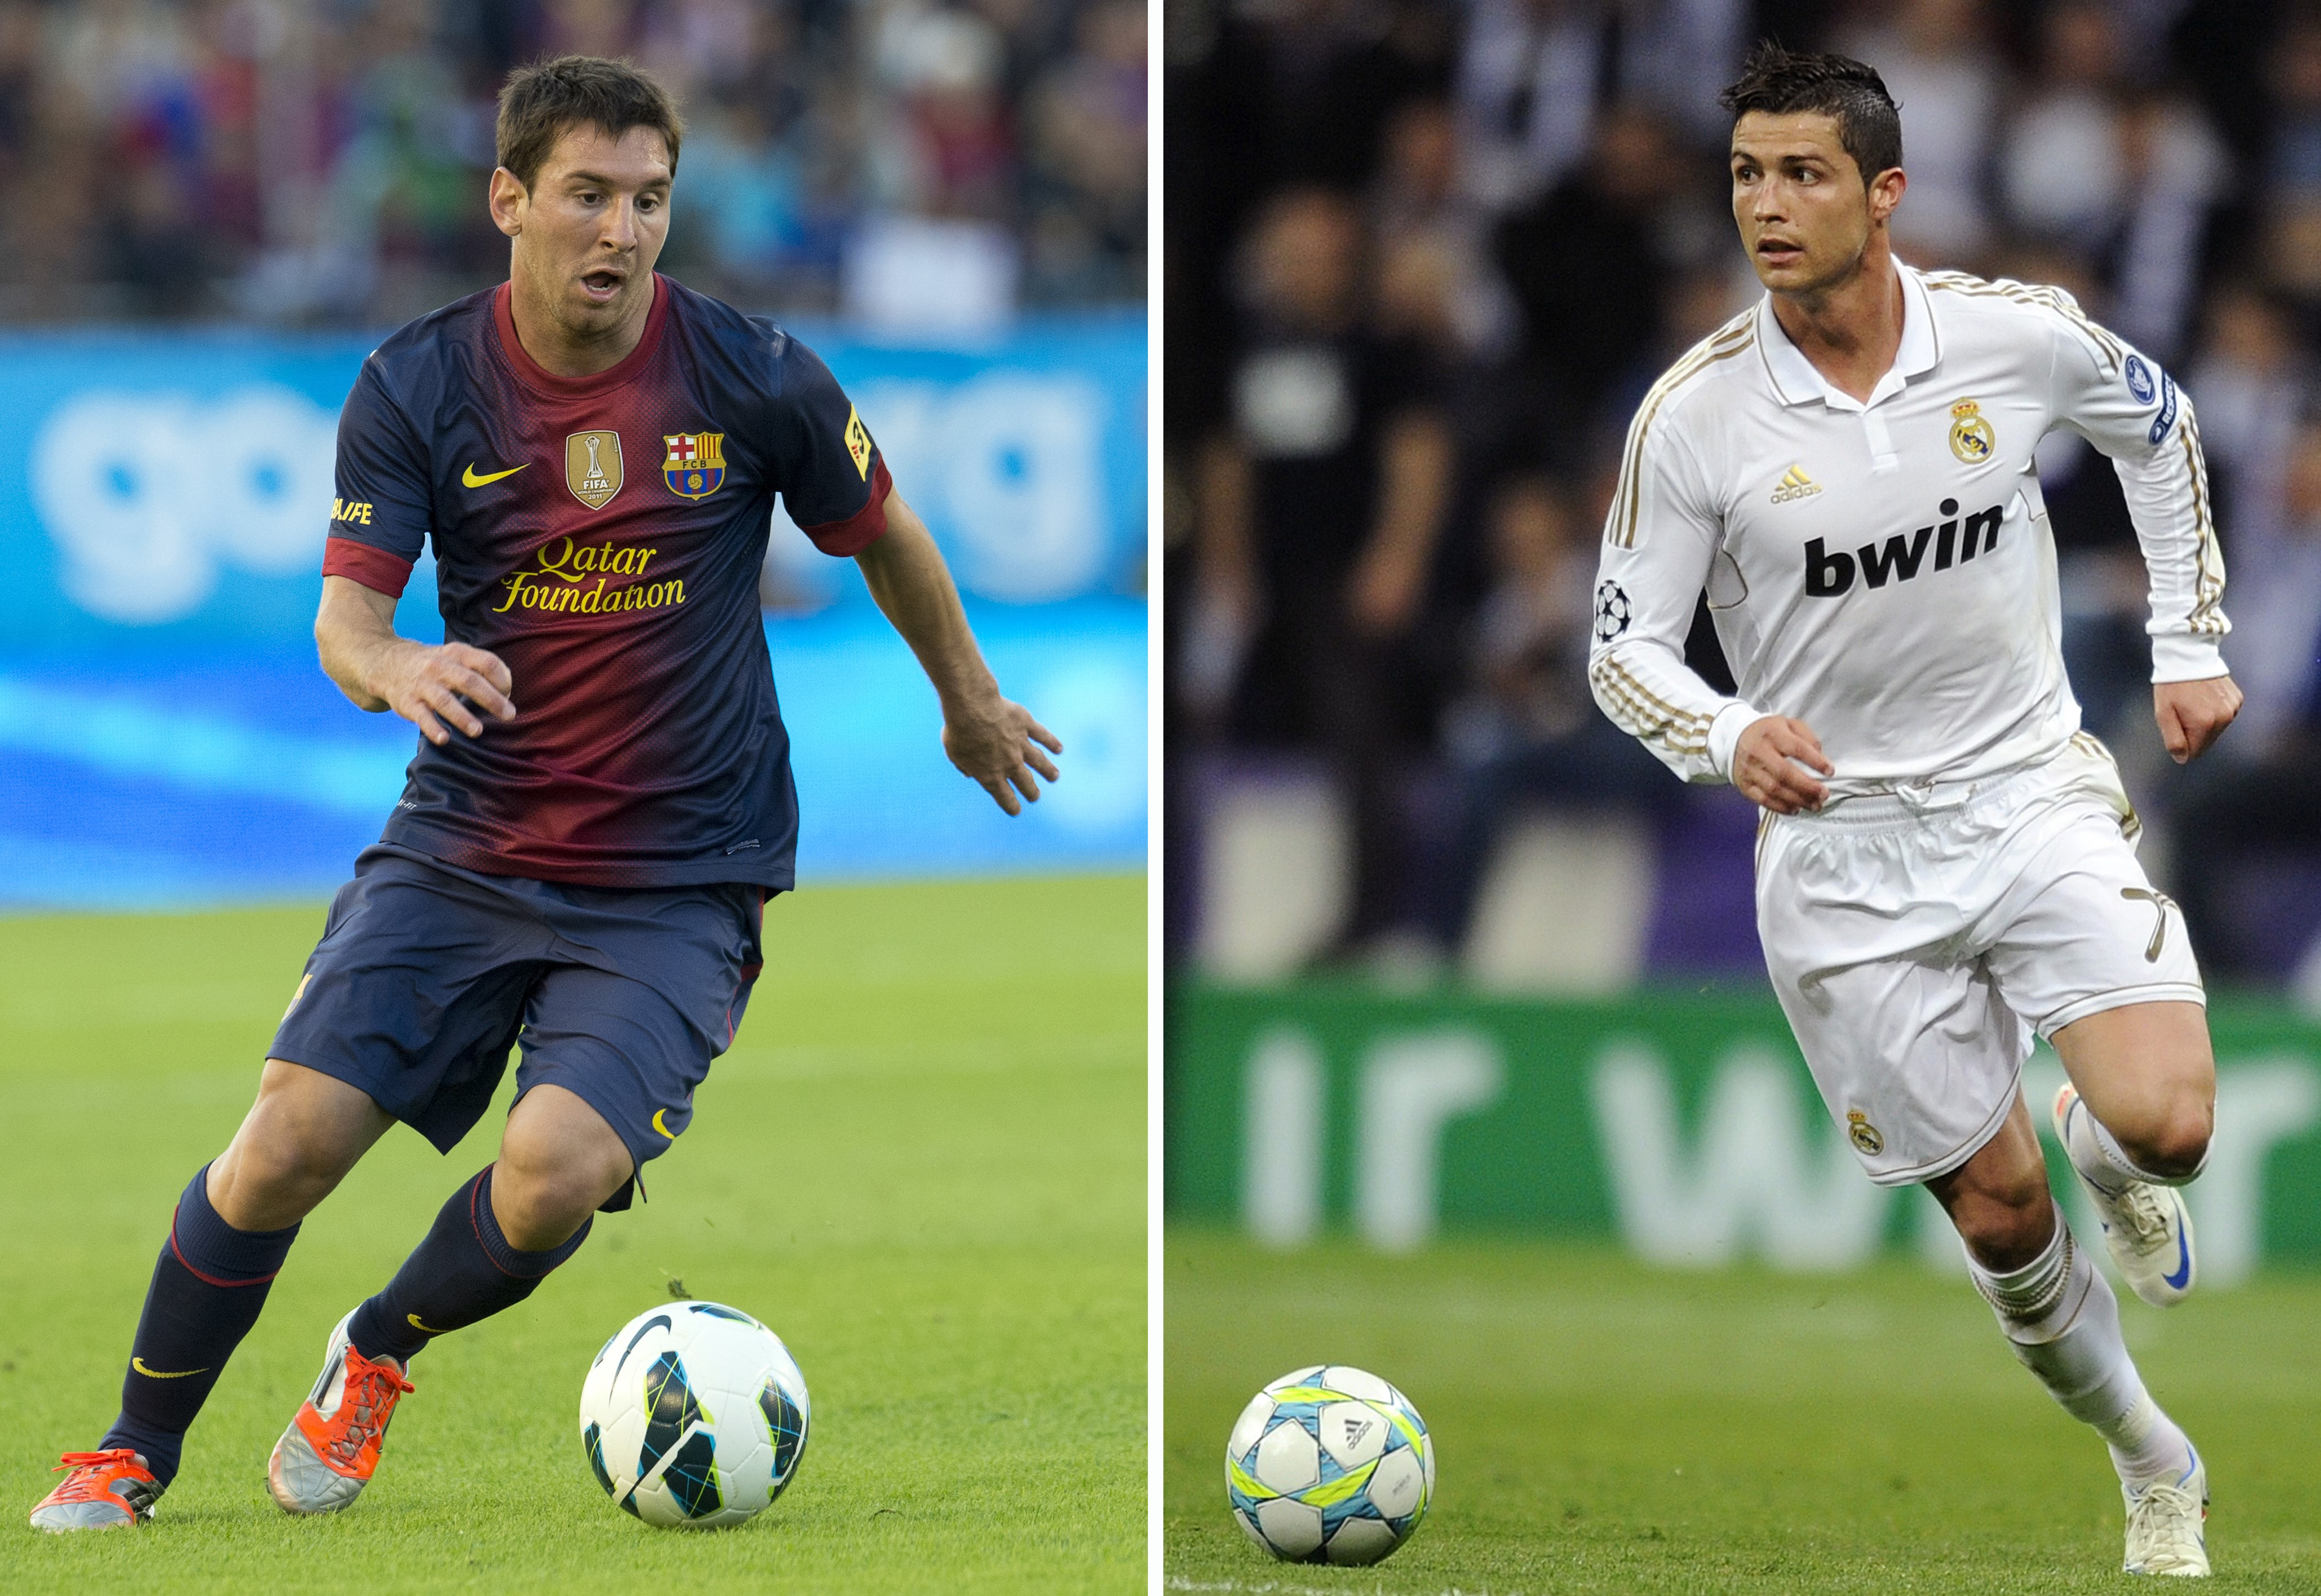 a comparison between football stars ronaldo and messi